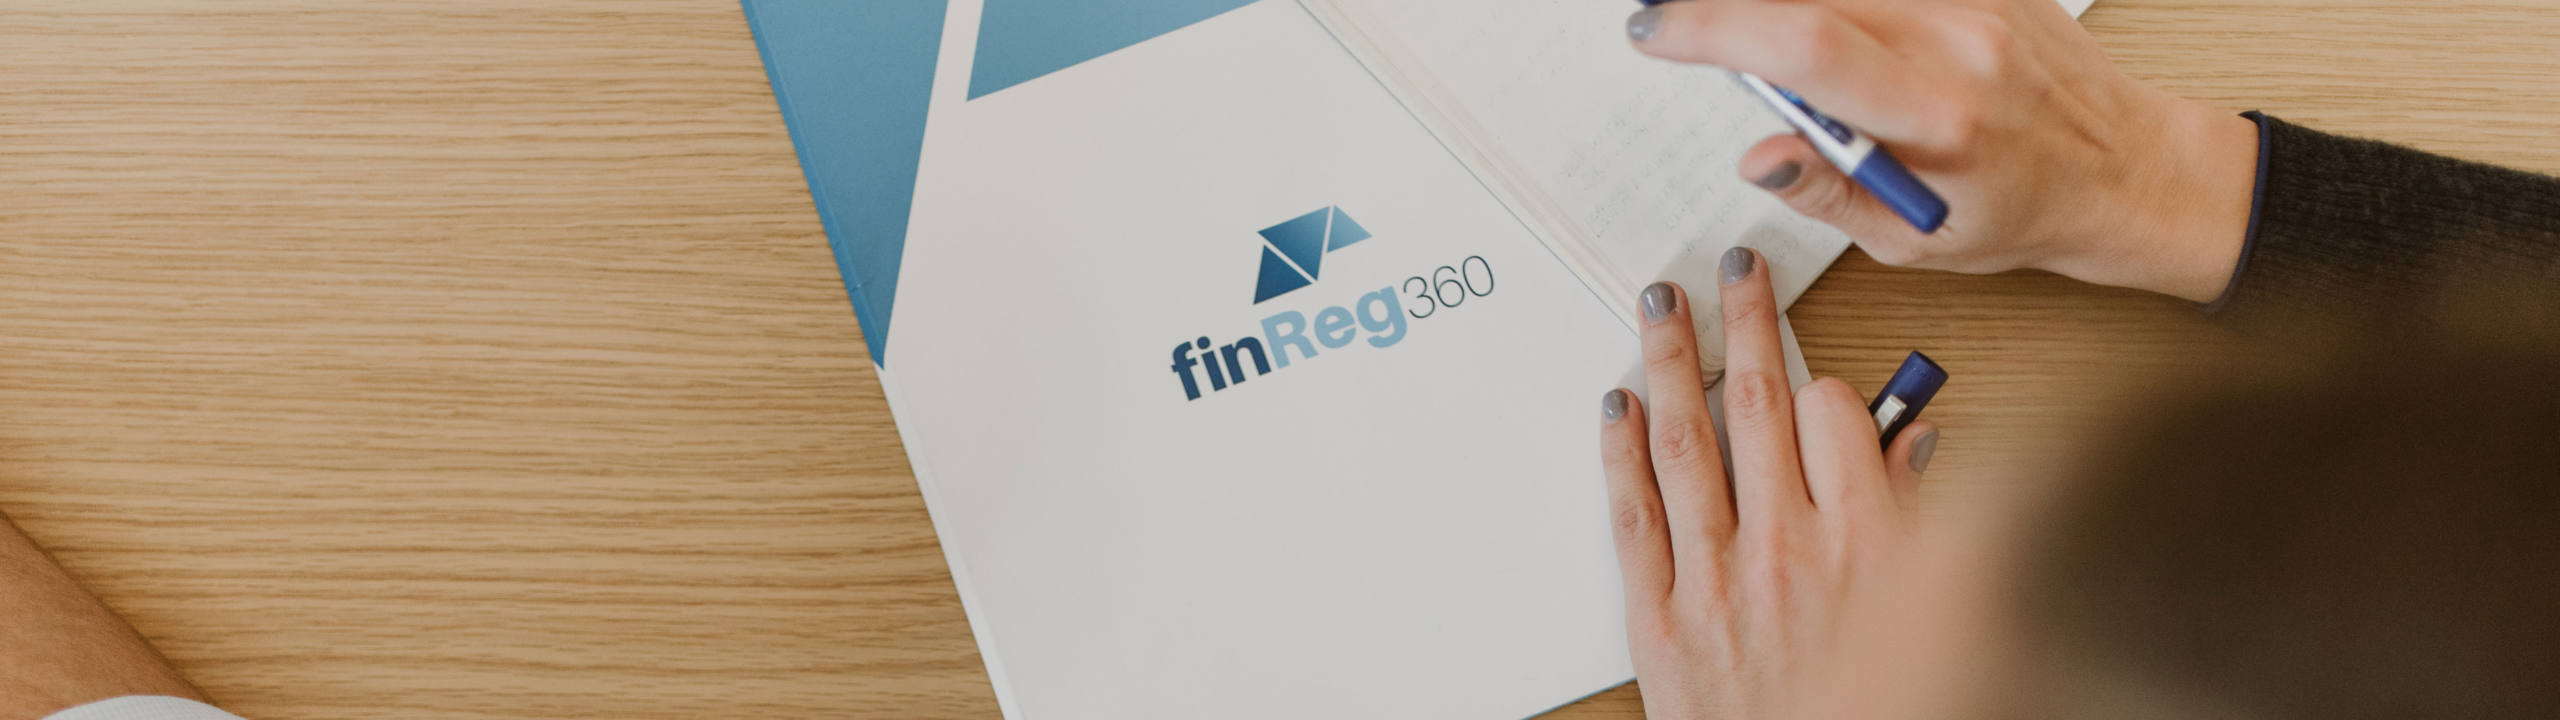 newsletter finReg360